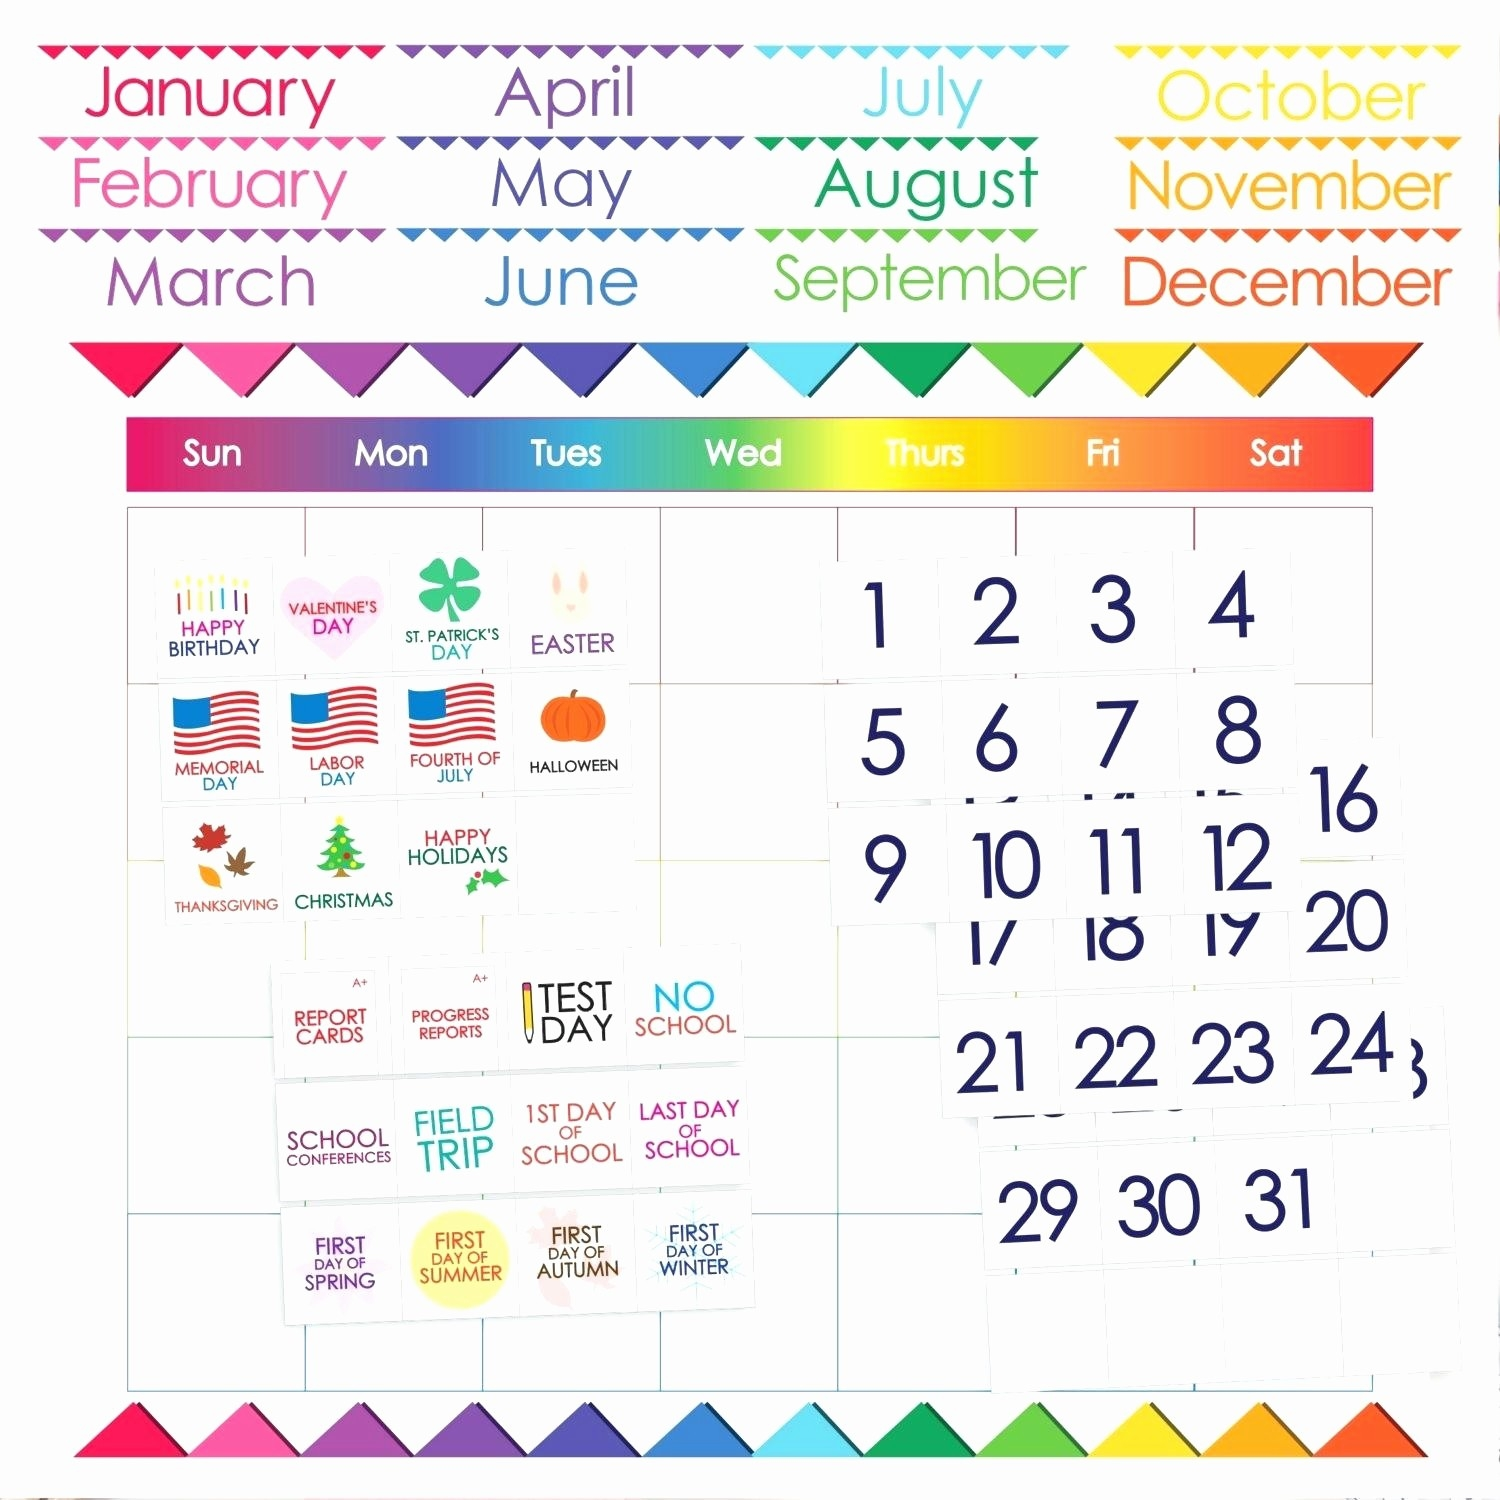 Https://www.basketshoescenter/35-12-Month-Calendar-Printable  Large Printable Calendar Numbers 1-31